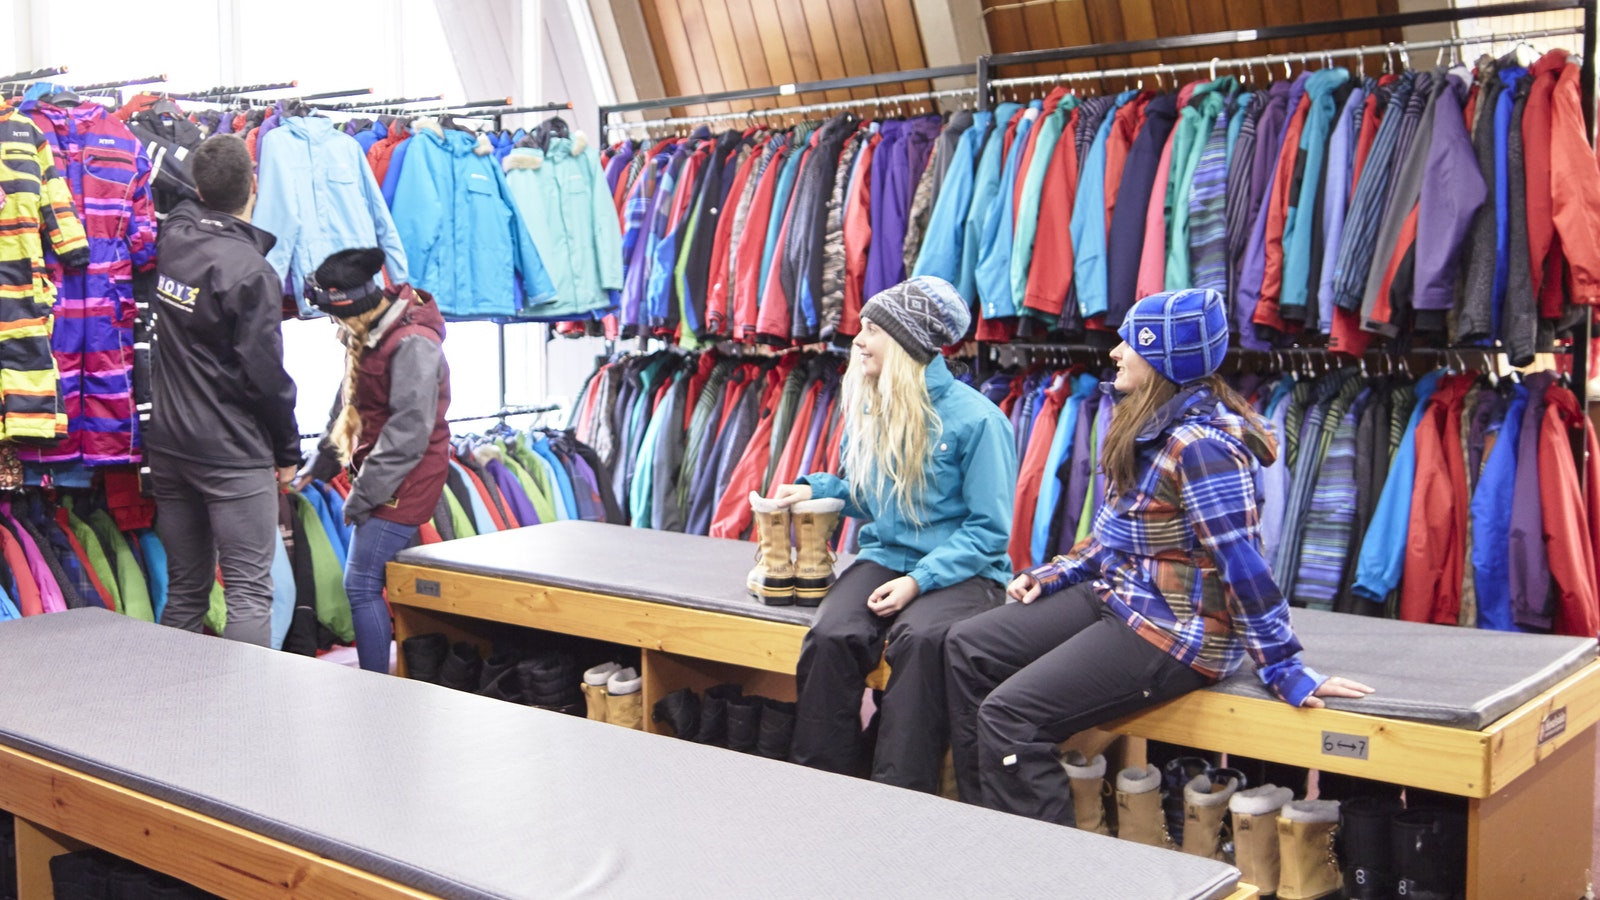 Hoys snow rental clothing